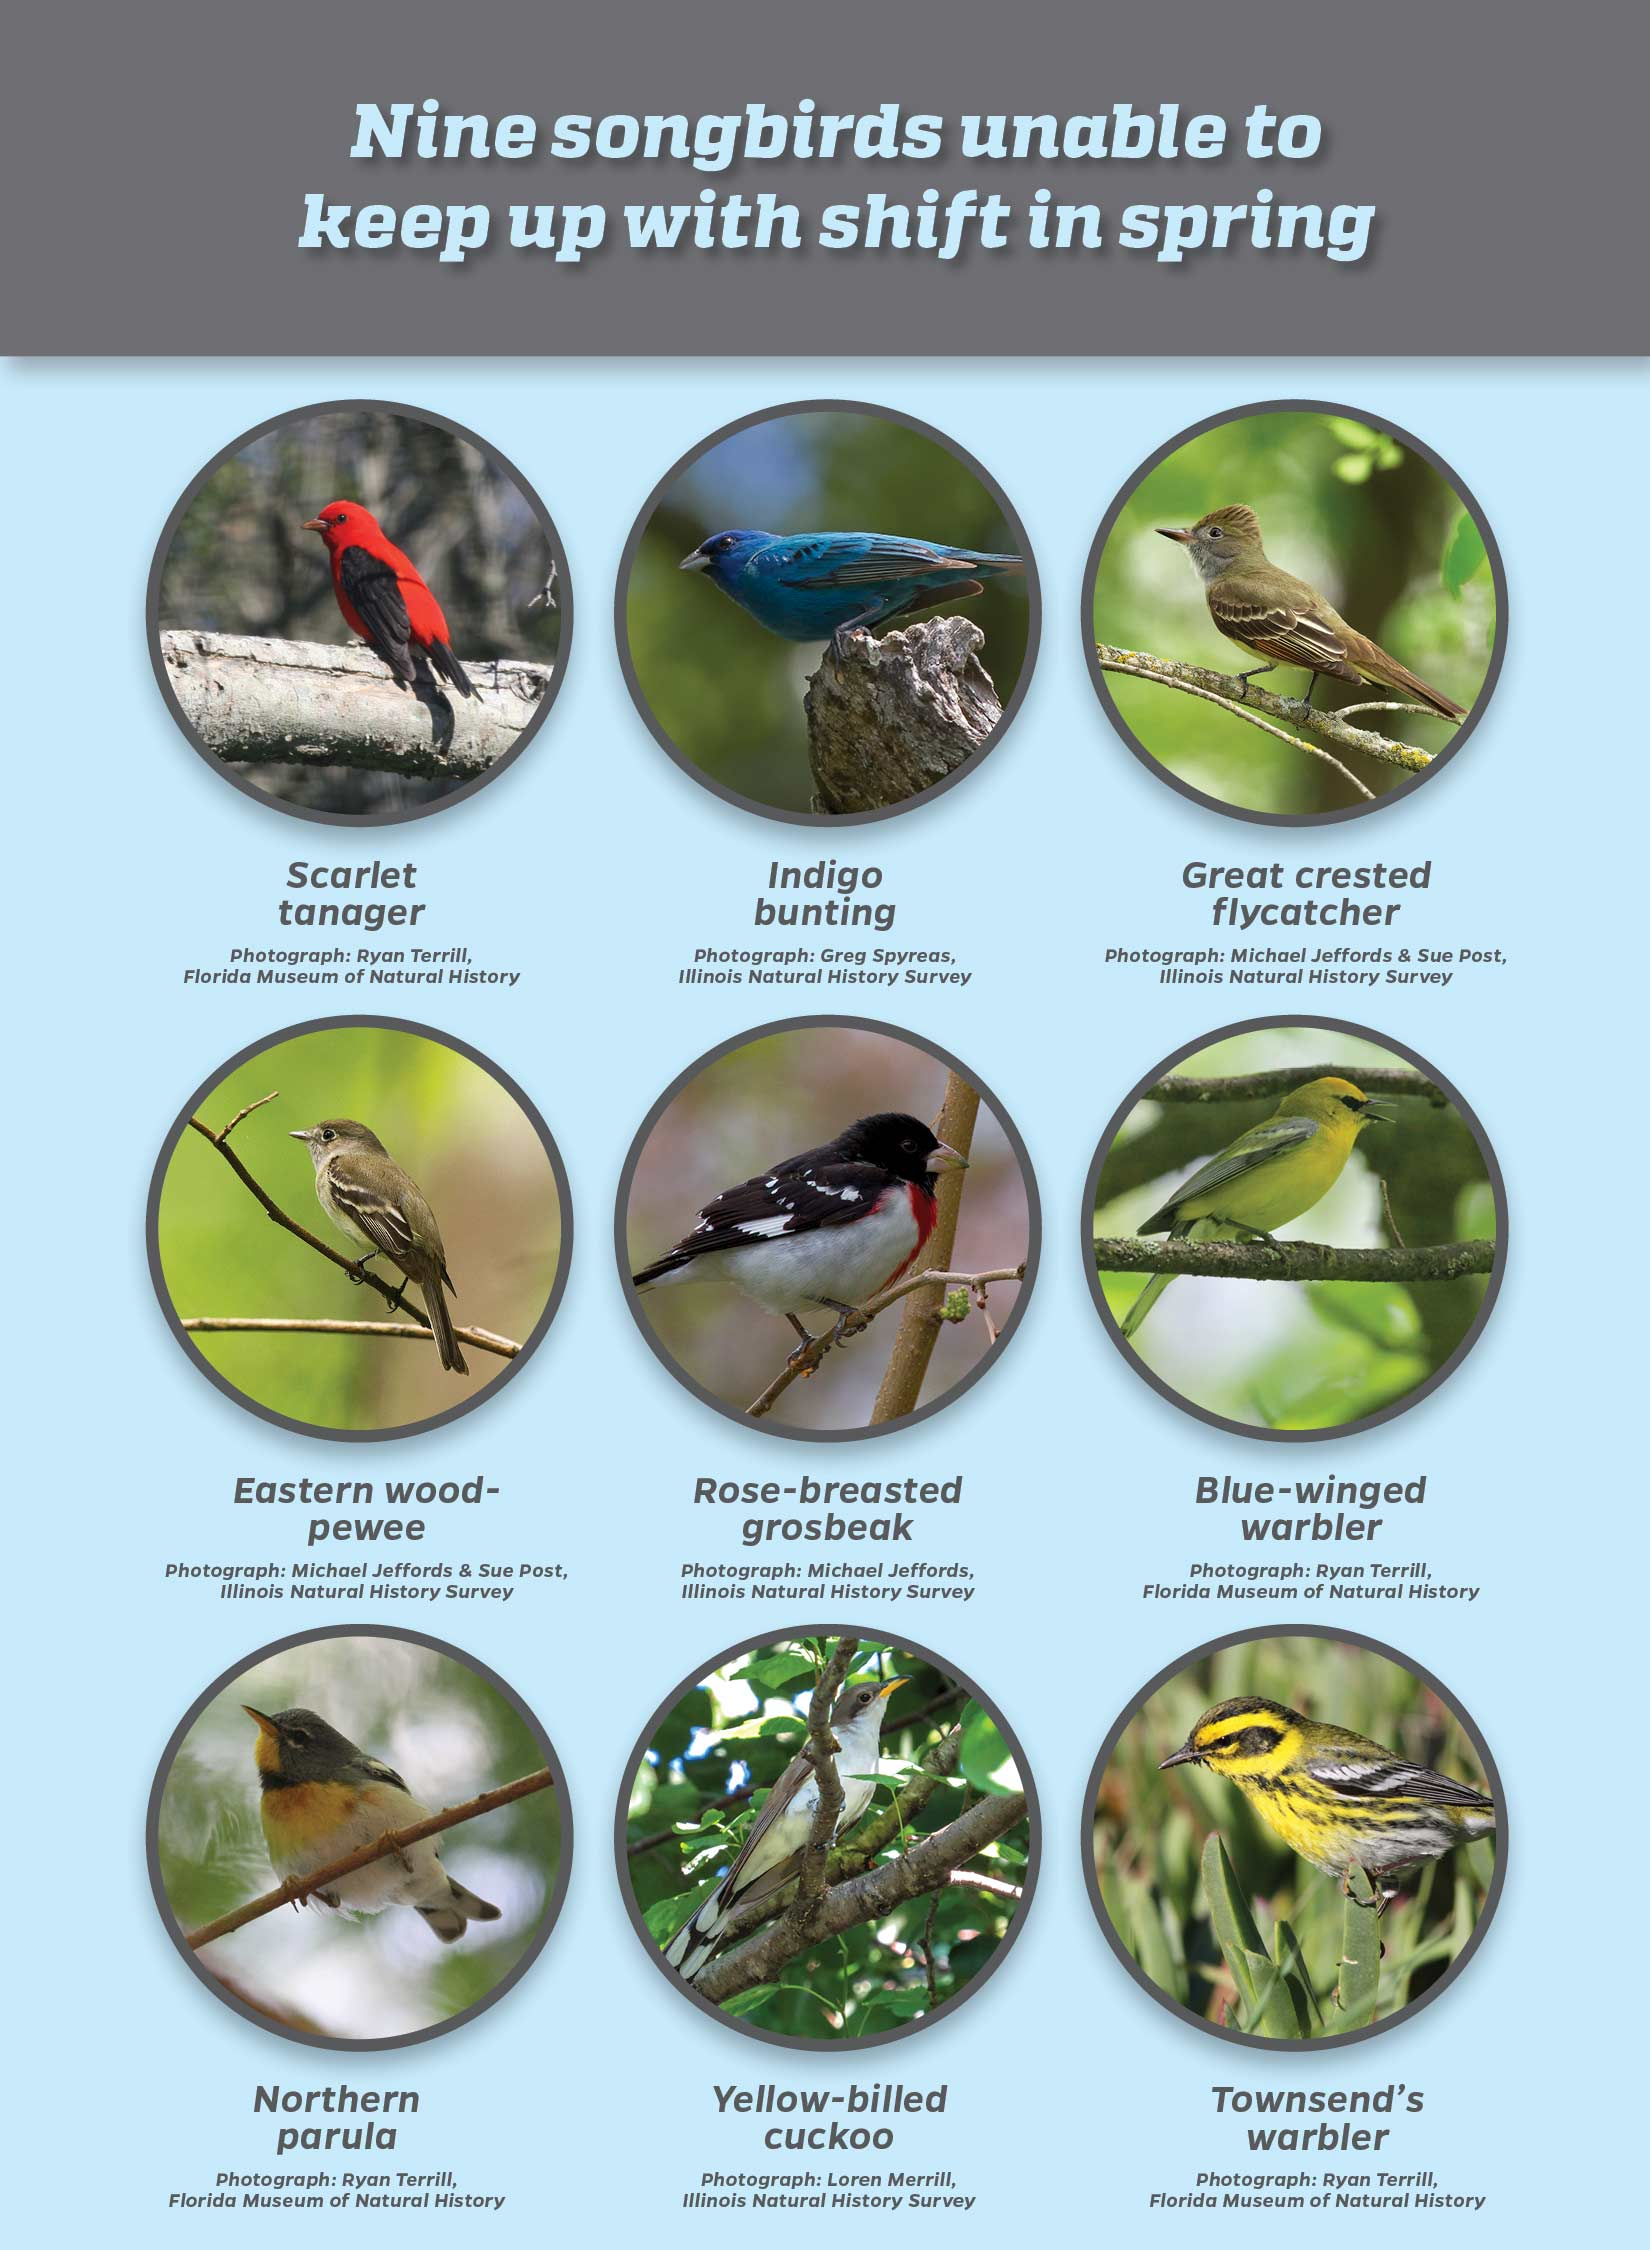 9 songbird species graphic